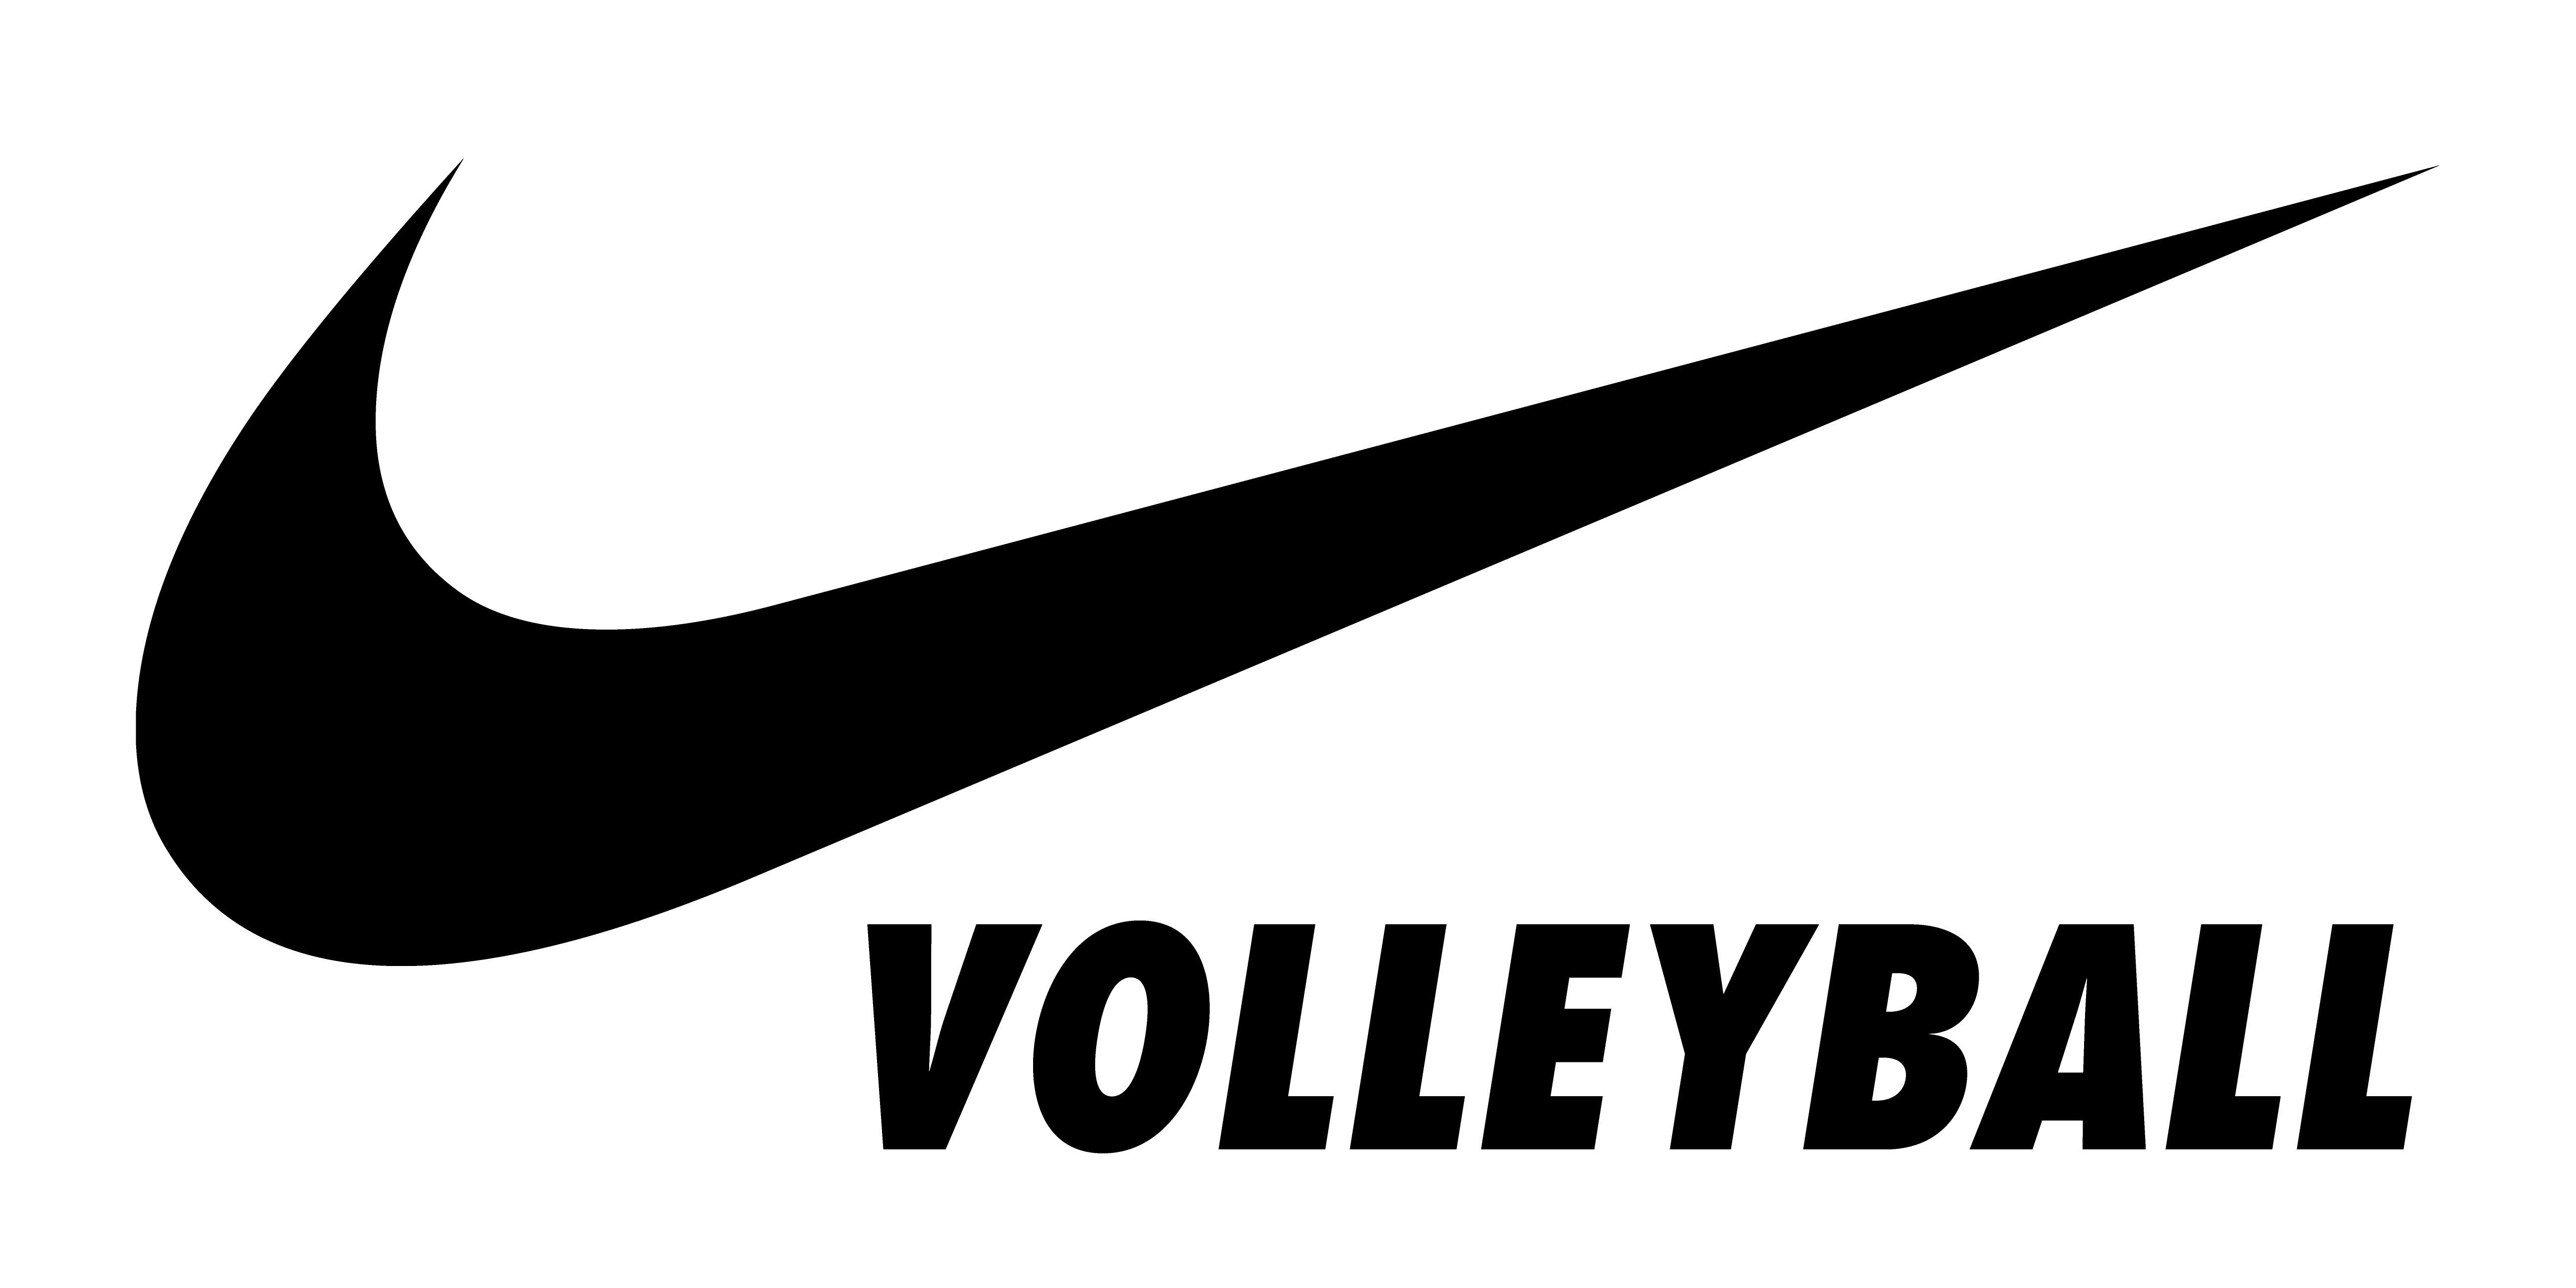 M1 Volleyball Nike Volleyball Volleyball Volleyball Images